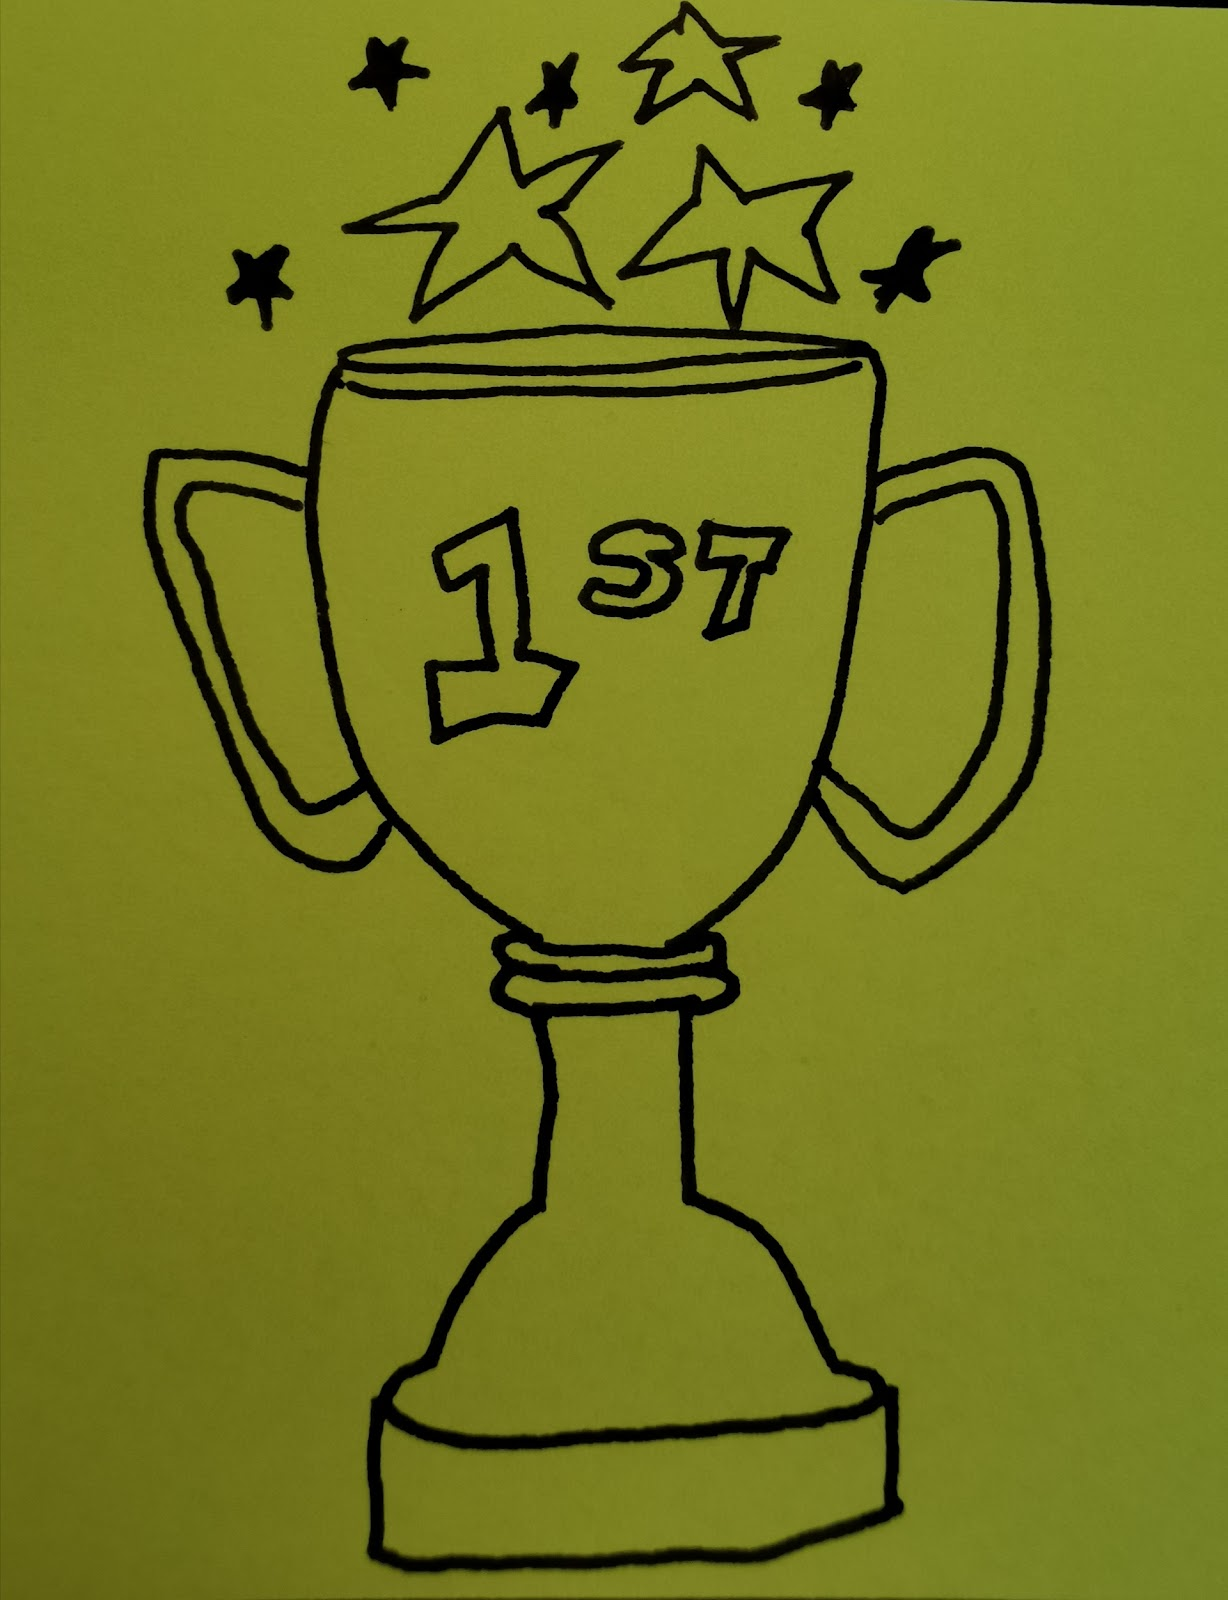 drawn trophy with stars coming our of the cup